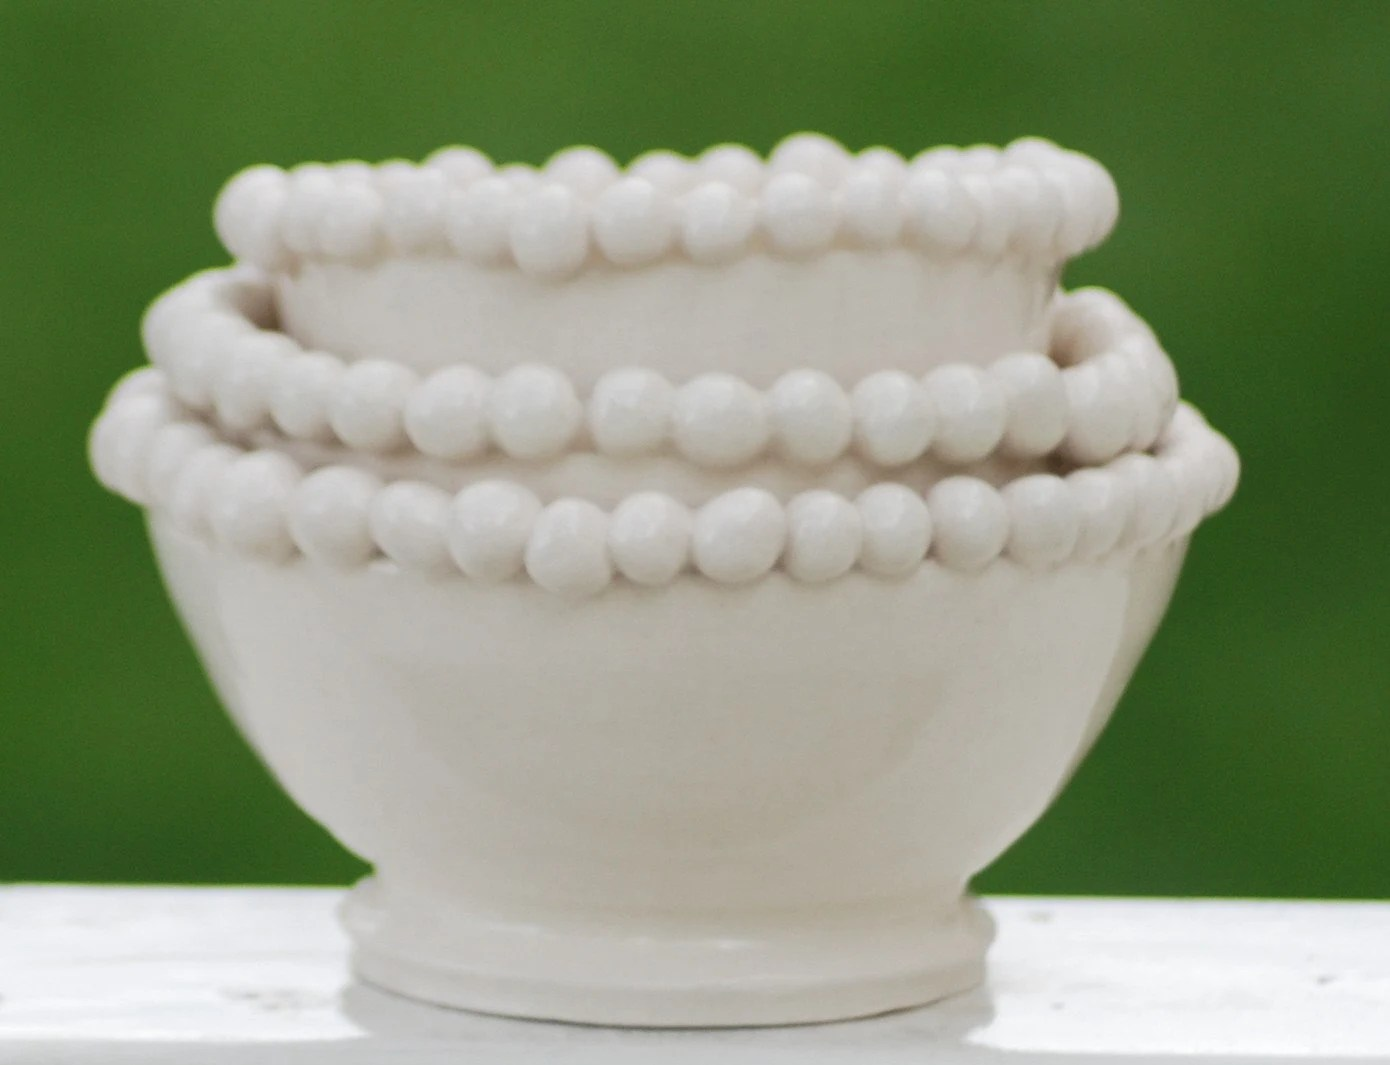 Three Handmade White stacking Bowls from Farmer Julie